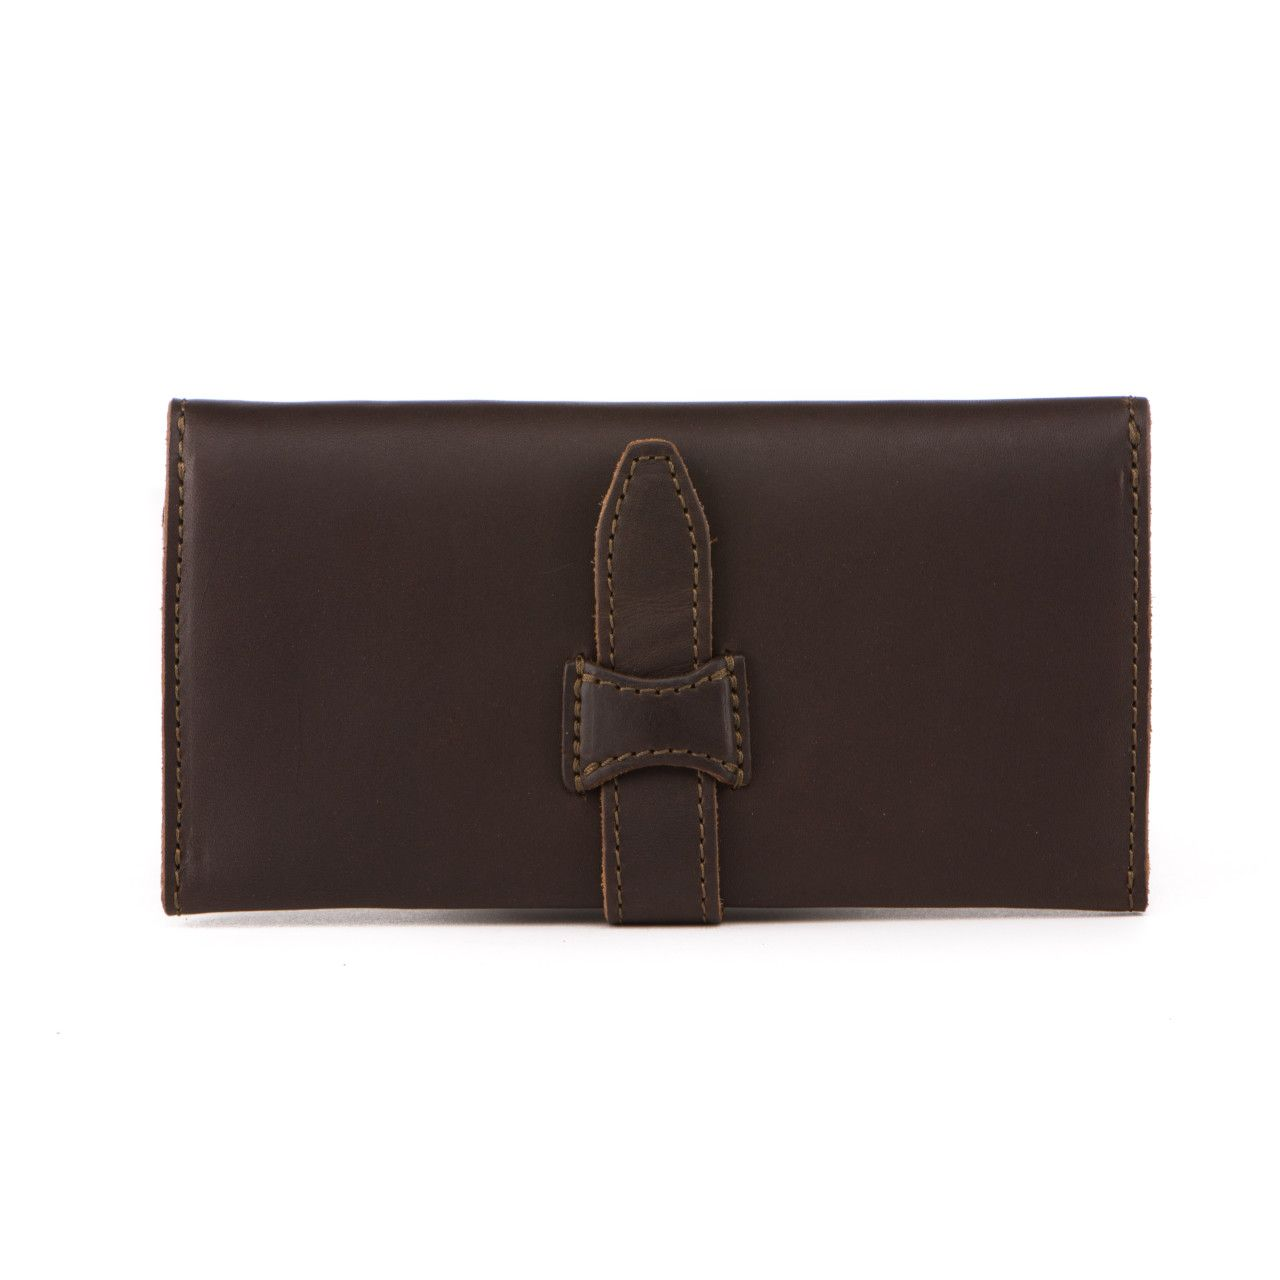 long trifold leather wallet in dark coffee brown leather